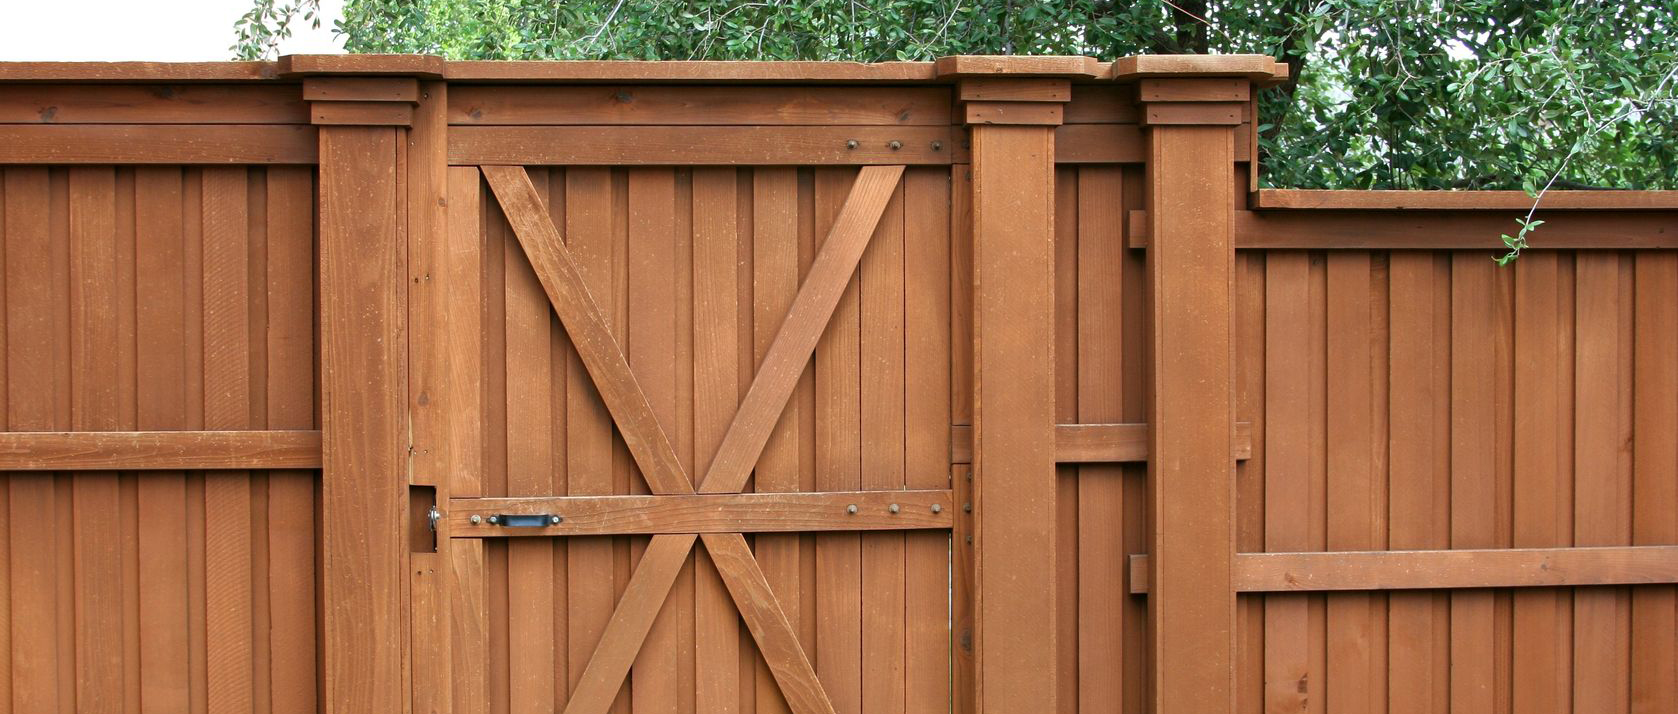 Gate Installation Austin Tx Ranchers Fencing Landscaping